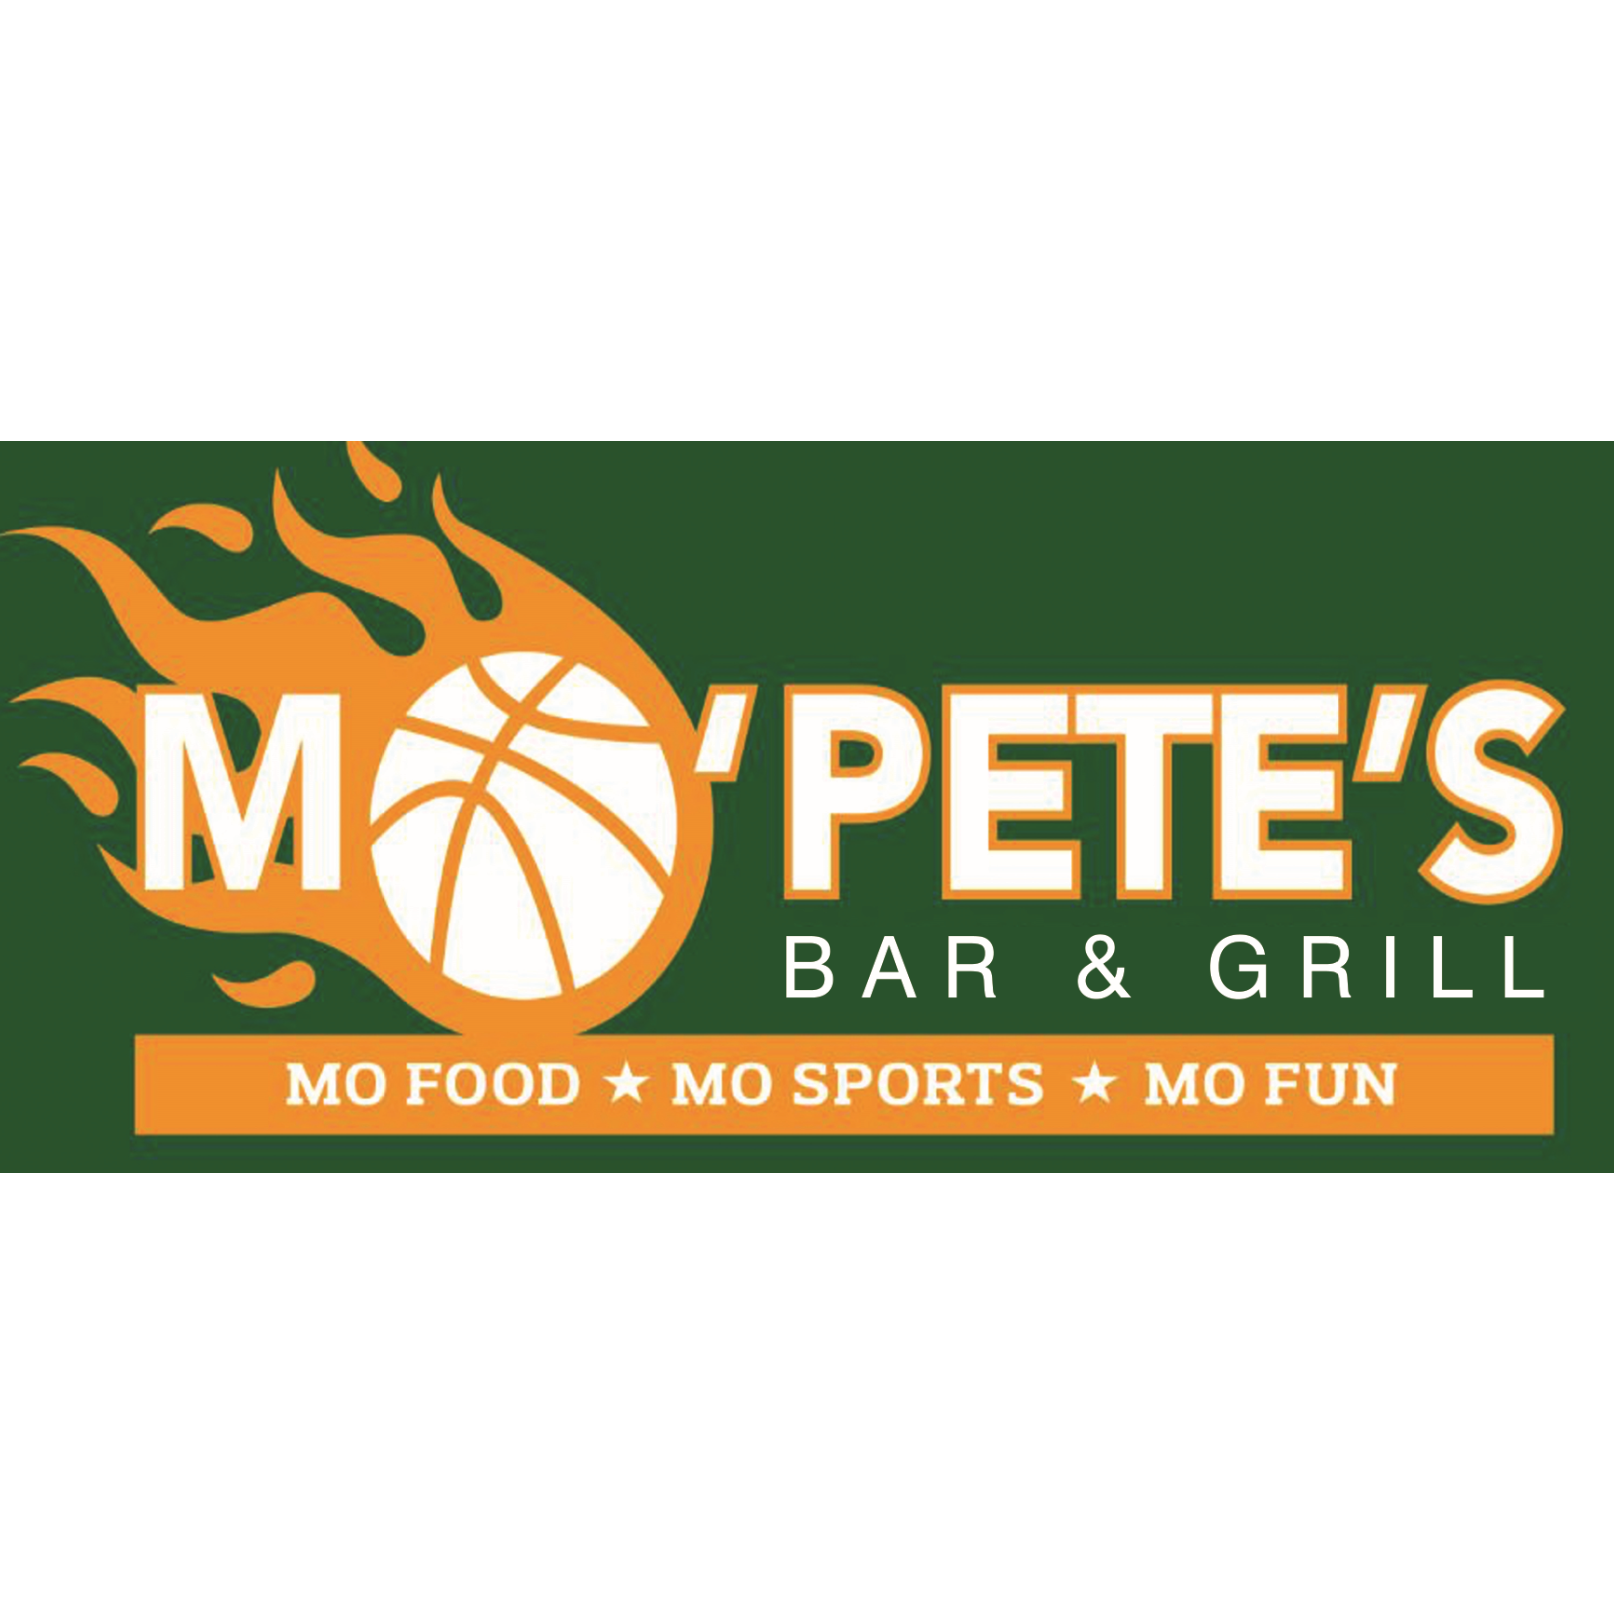 Mo Pete's Bar & Grill